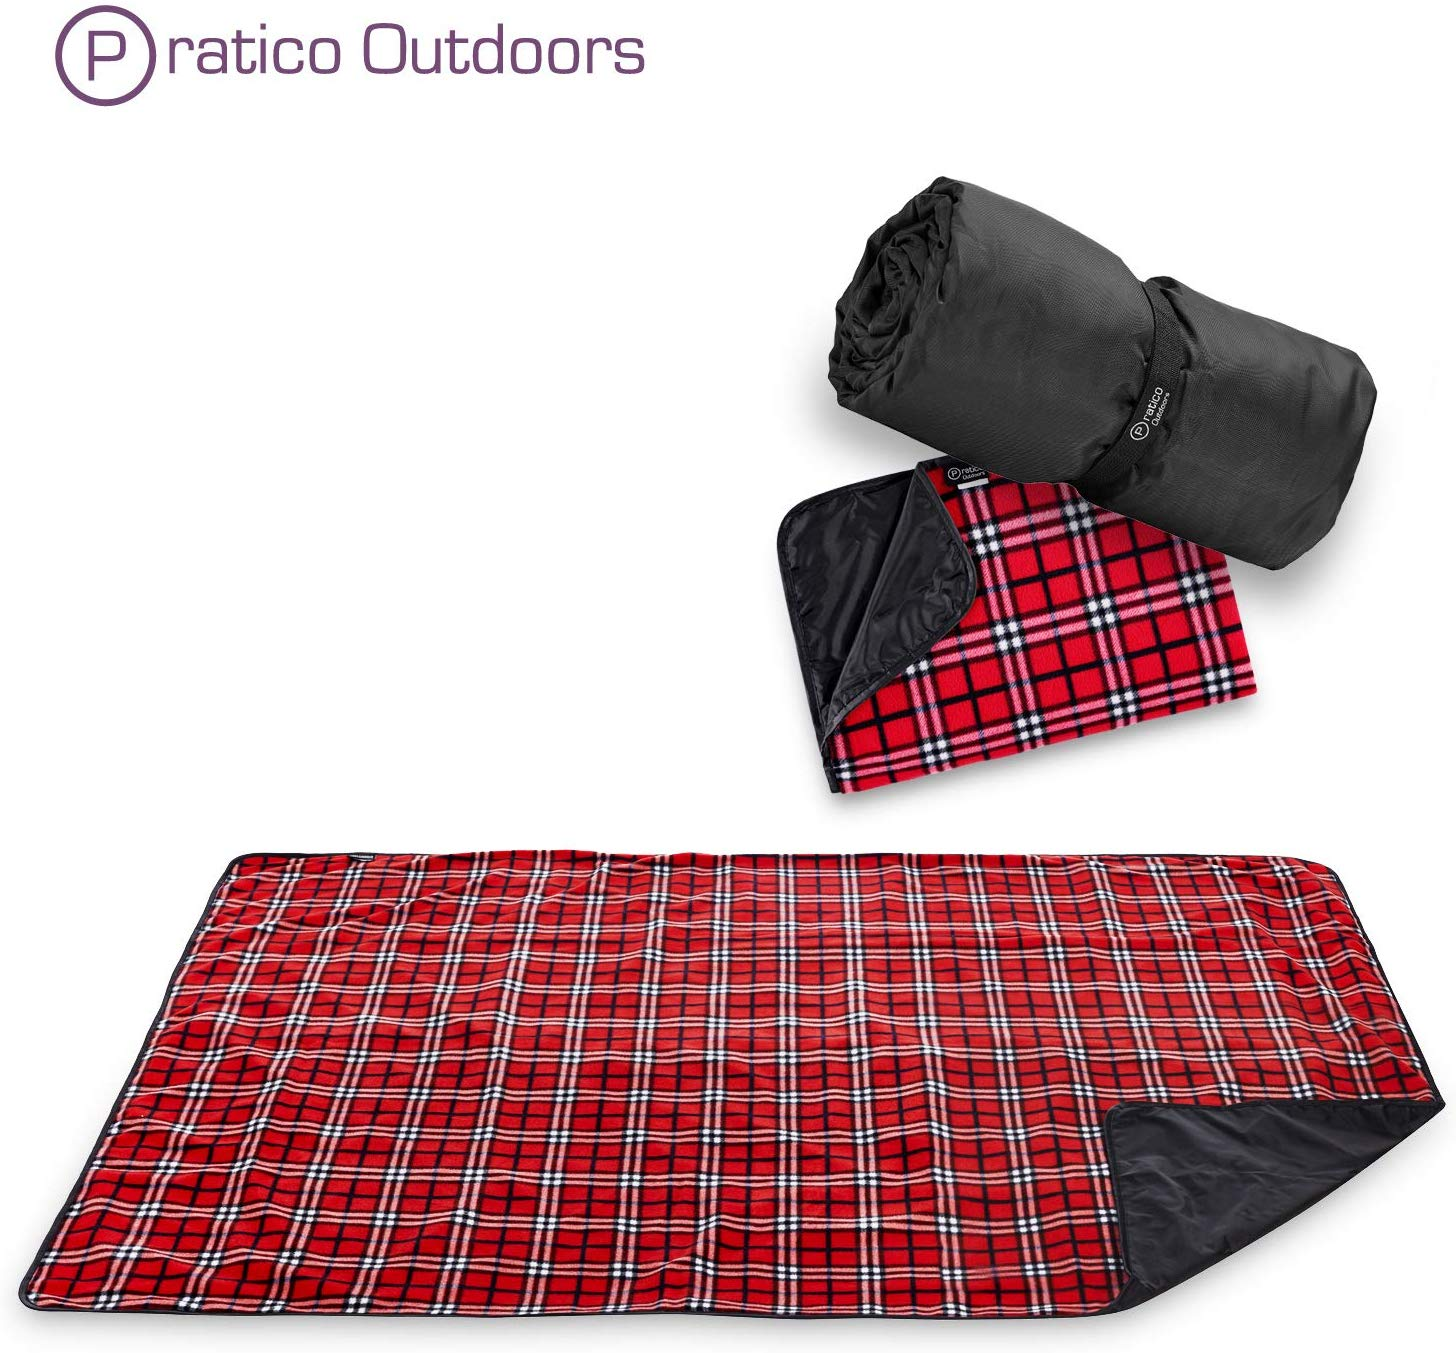 #8. Premium Extra Large Outdoor Picnic Blanket, Red Color,